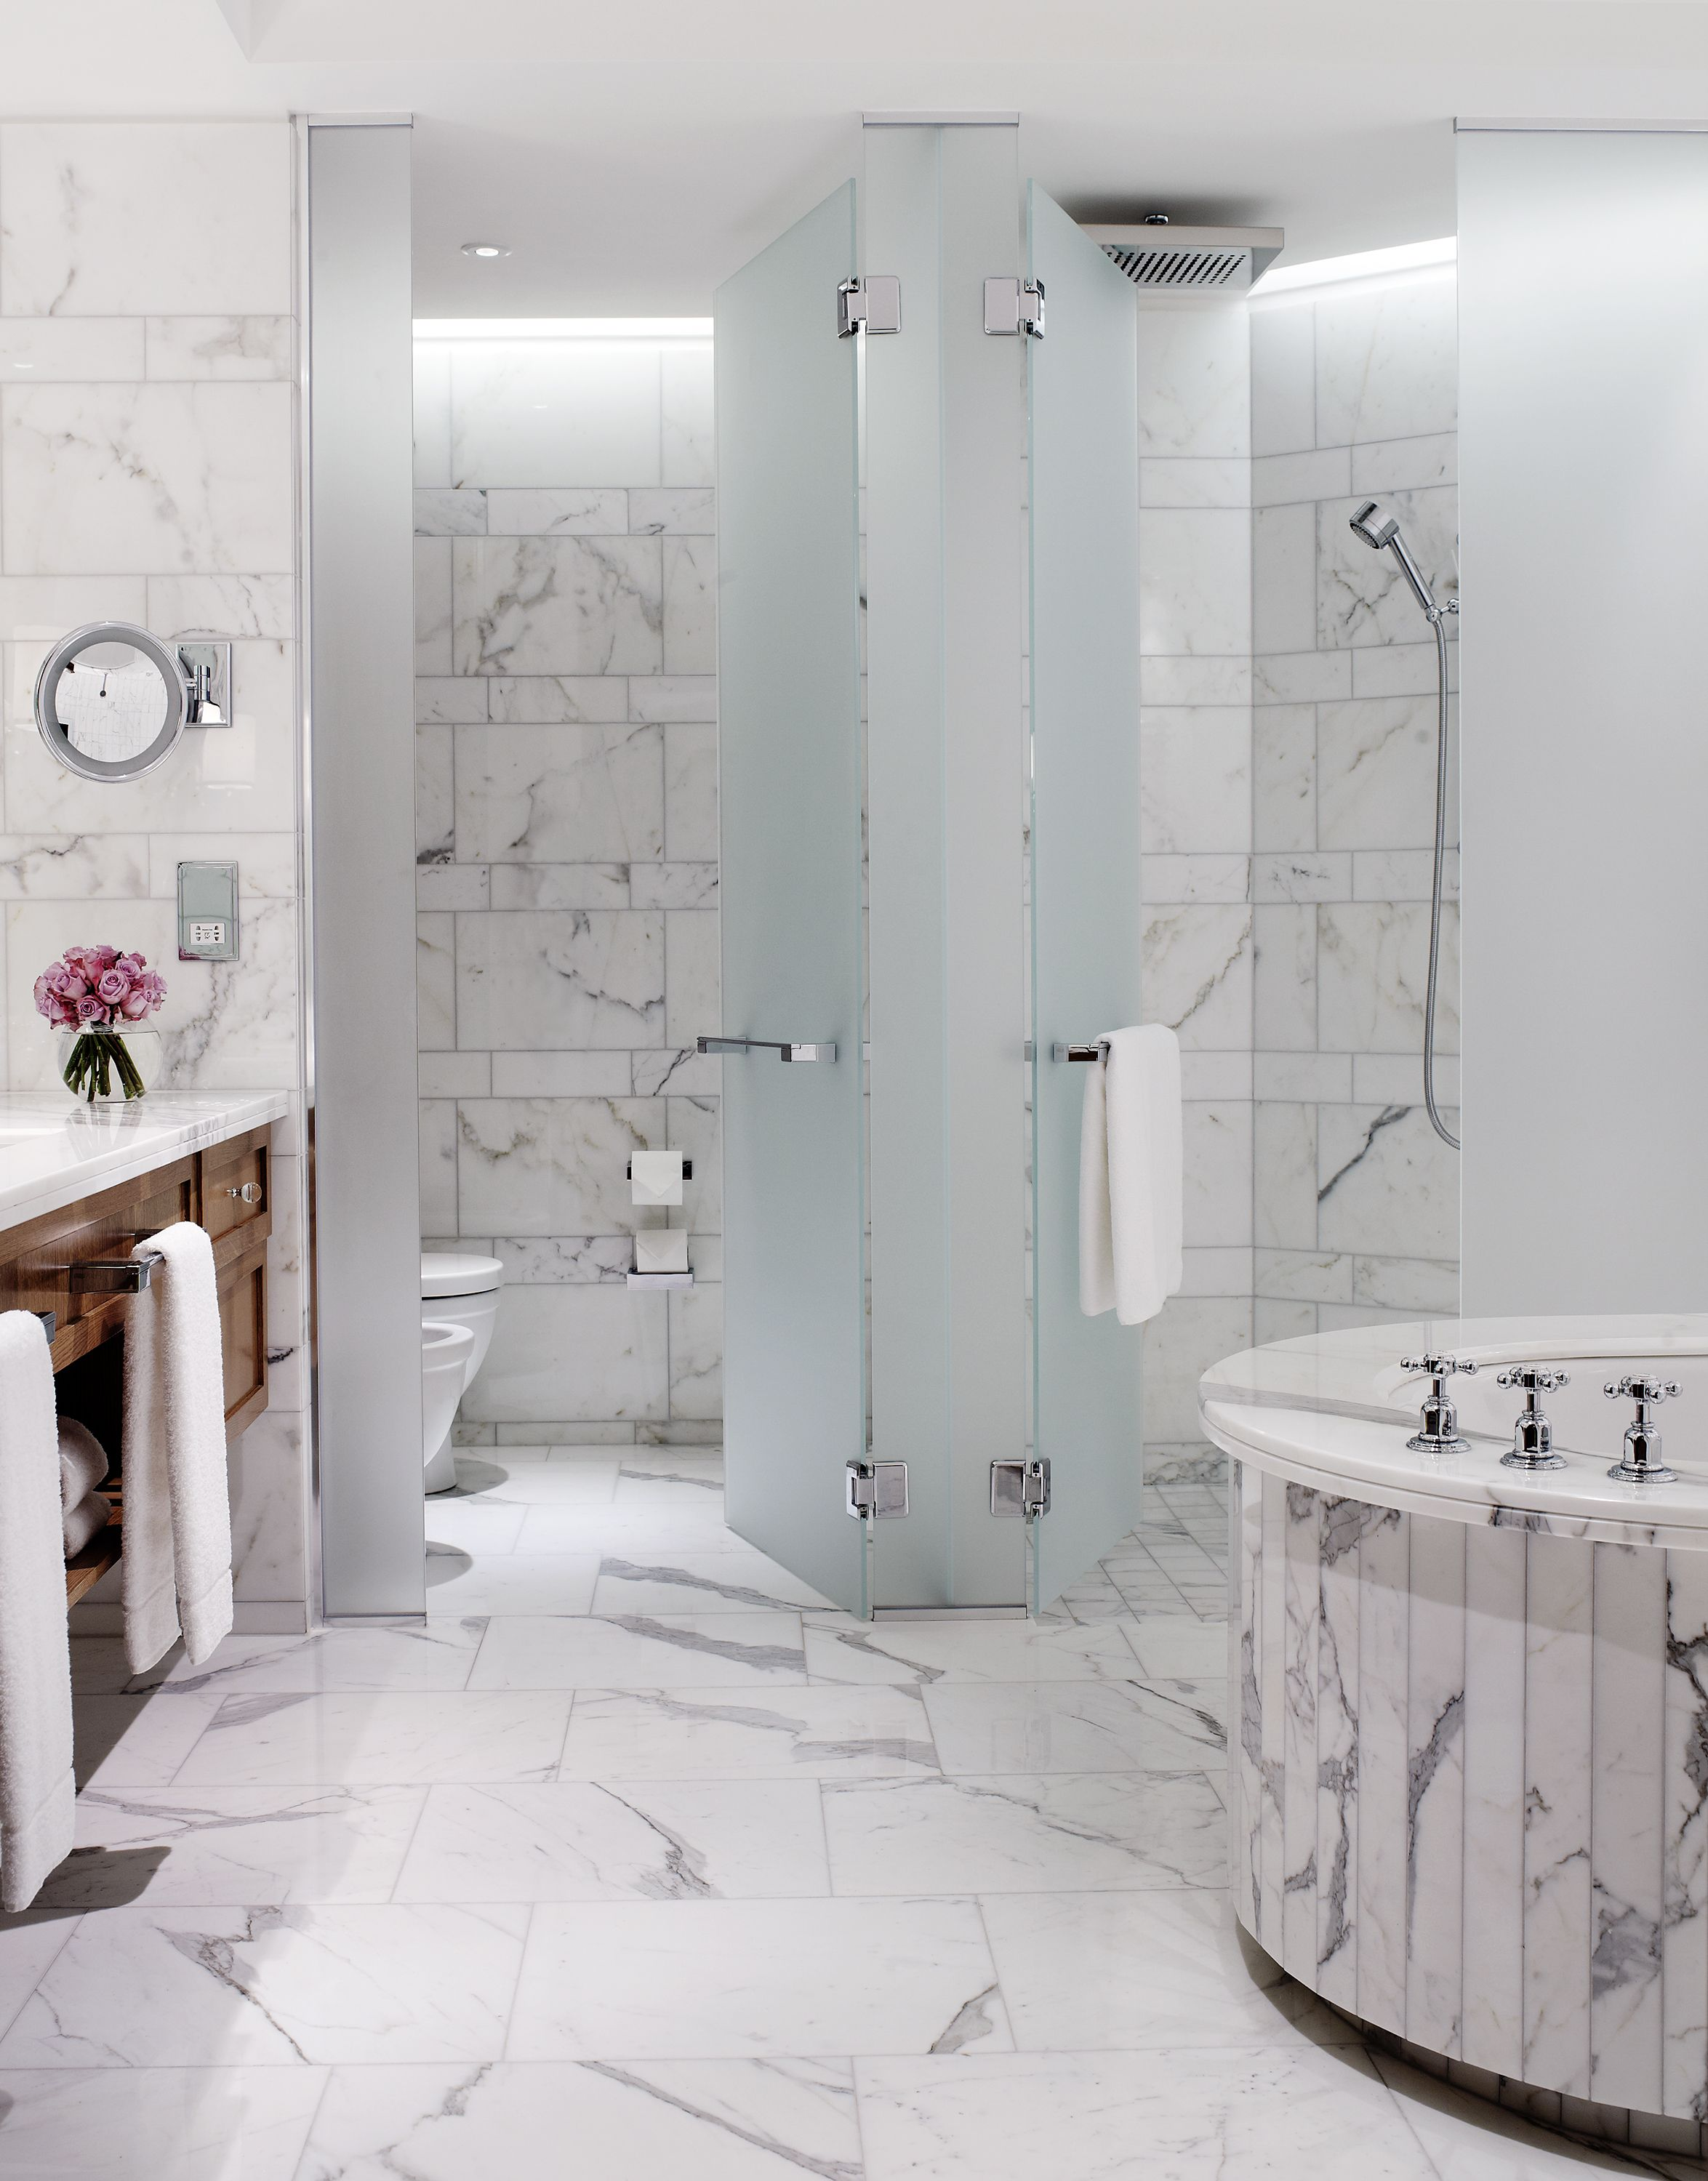 Marble Bathrooms With Underfloor Heating And Oval Bath Tubs Luxury At Corinthia Hotel London